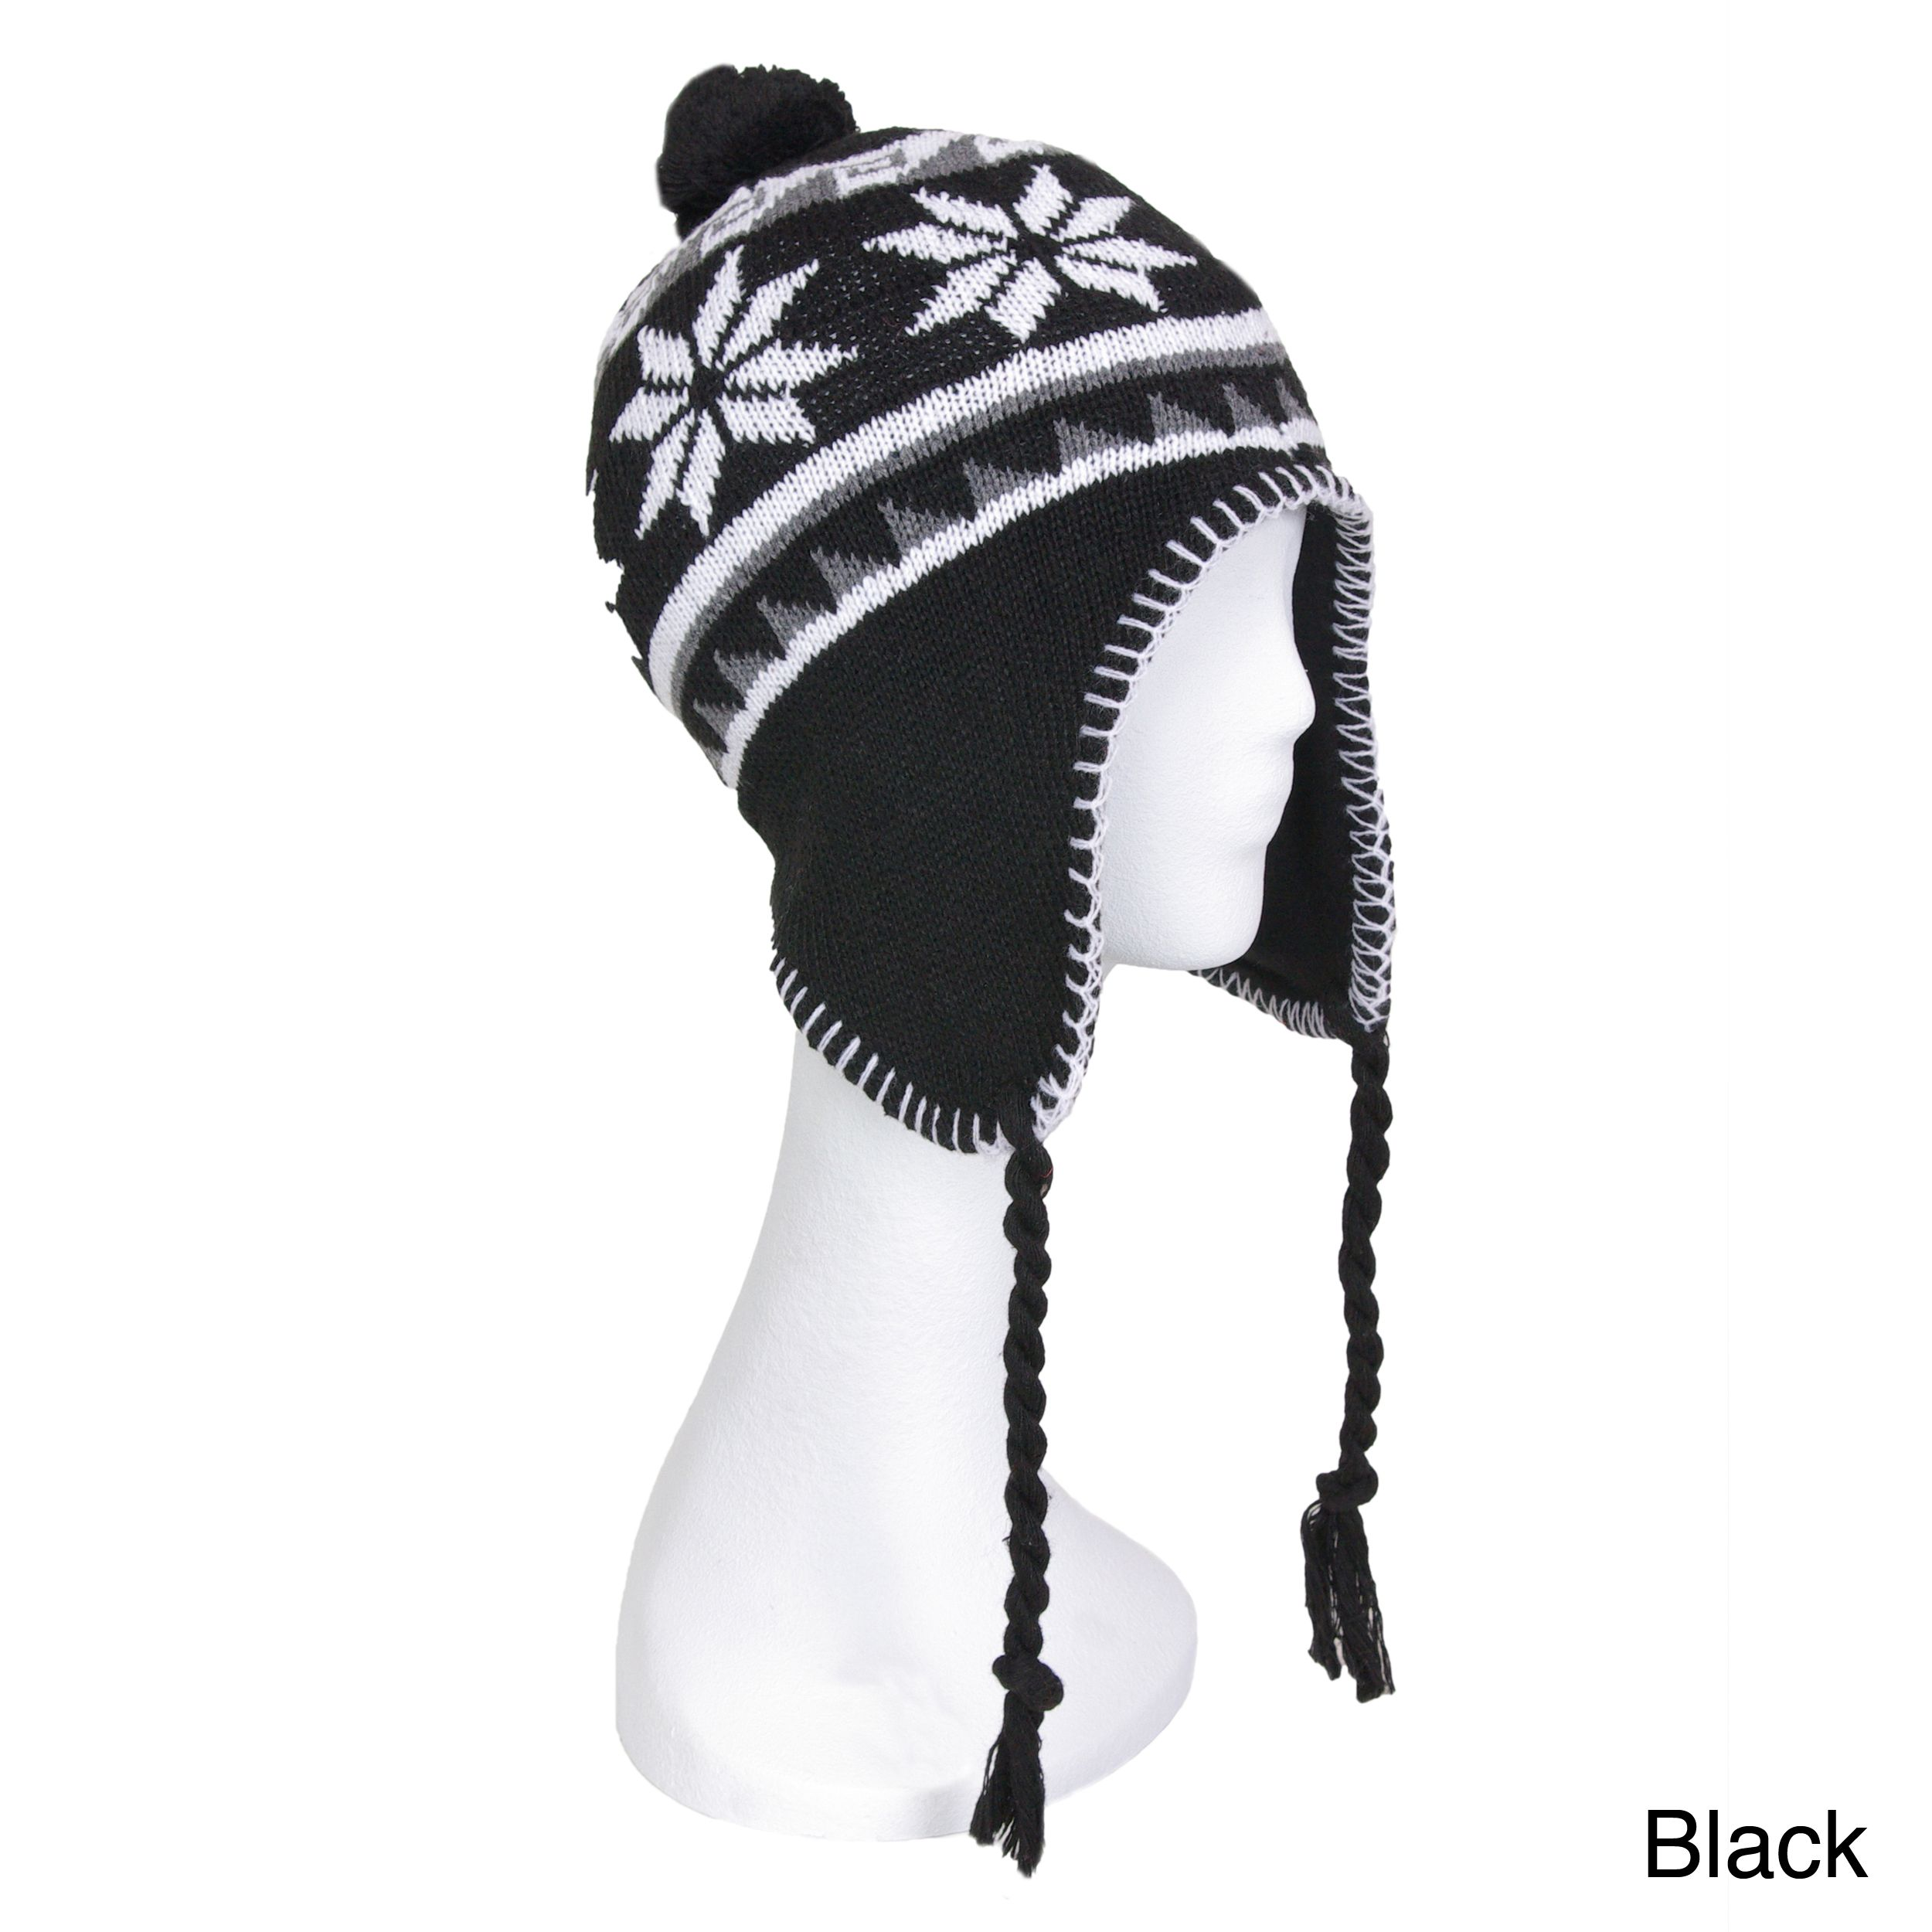 d014ca798ce7f4 This retro snowflake patterned beanie hat is great for all cold weather  activities. Keep warm